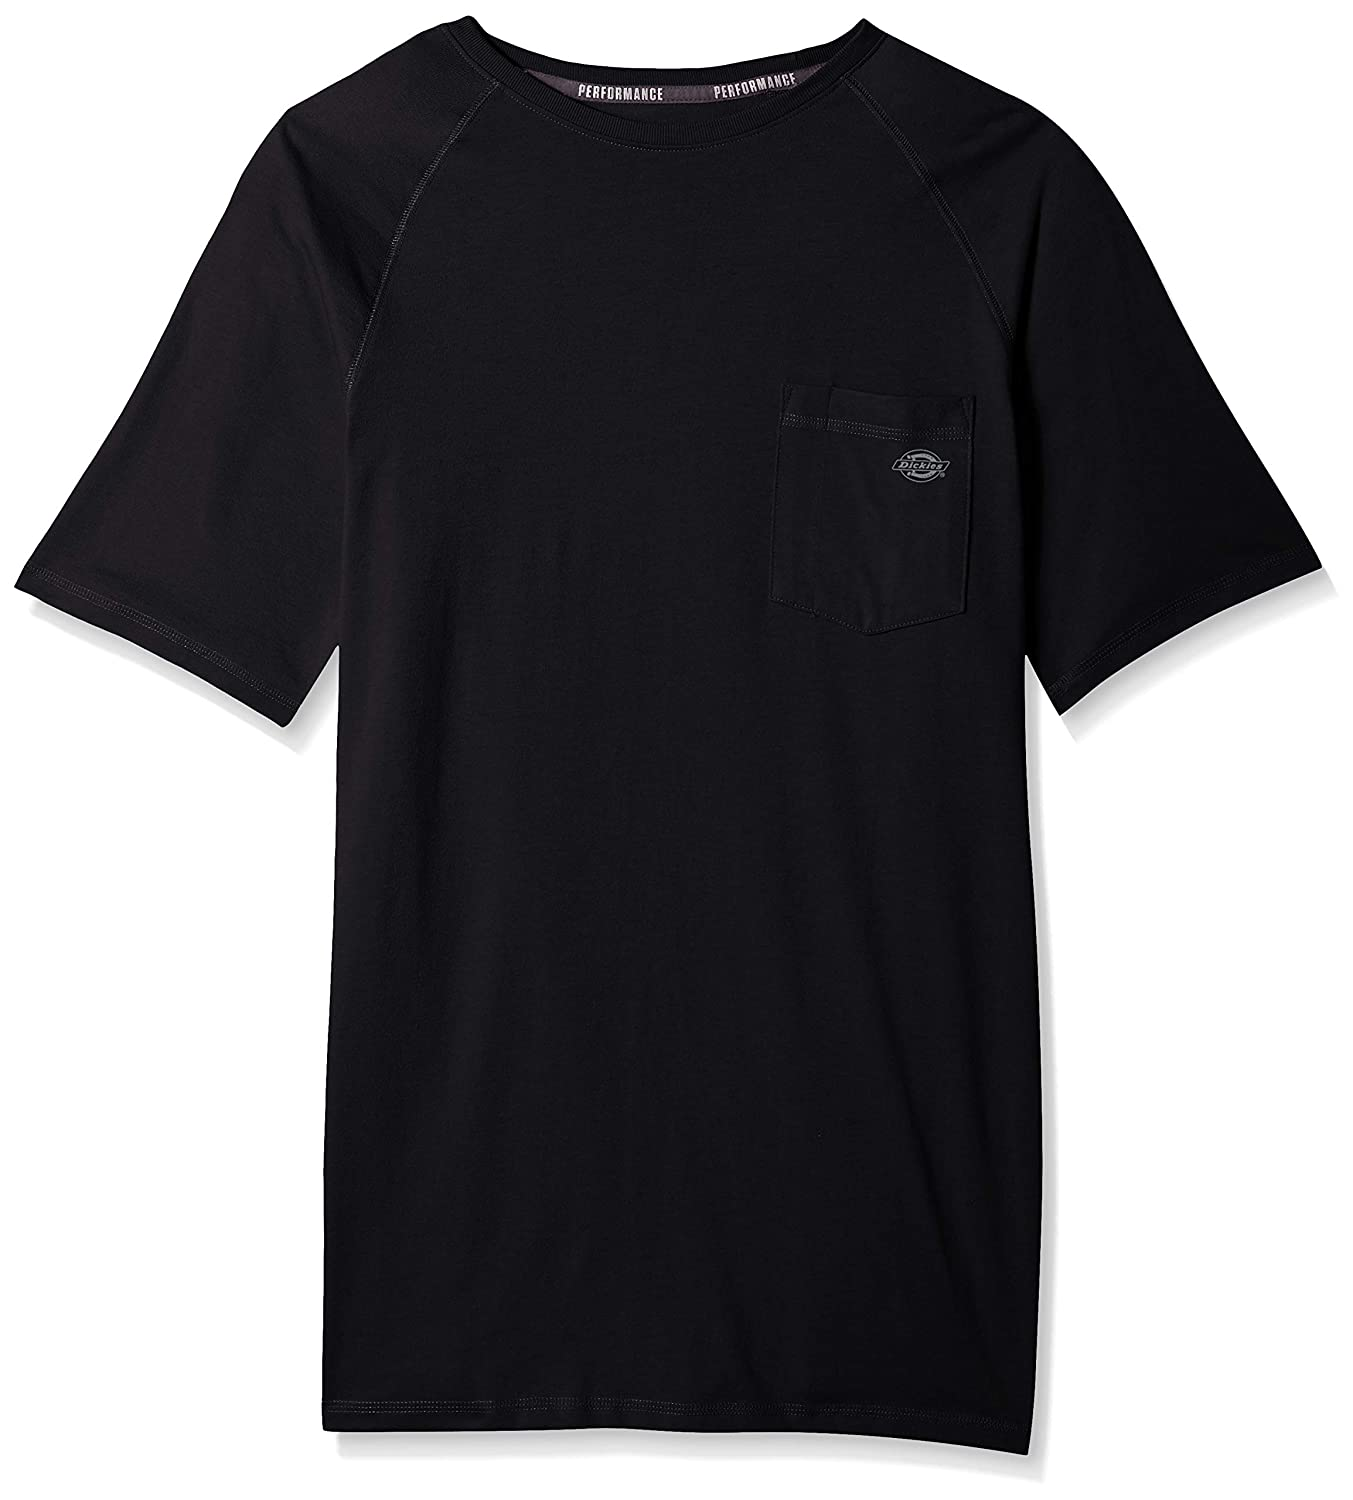 Dickies Mens Short Sleeve Performance Cooling Tee